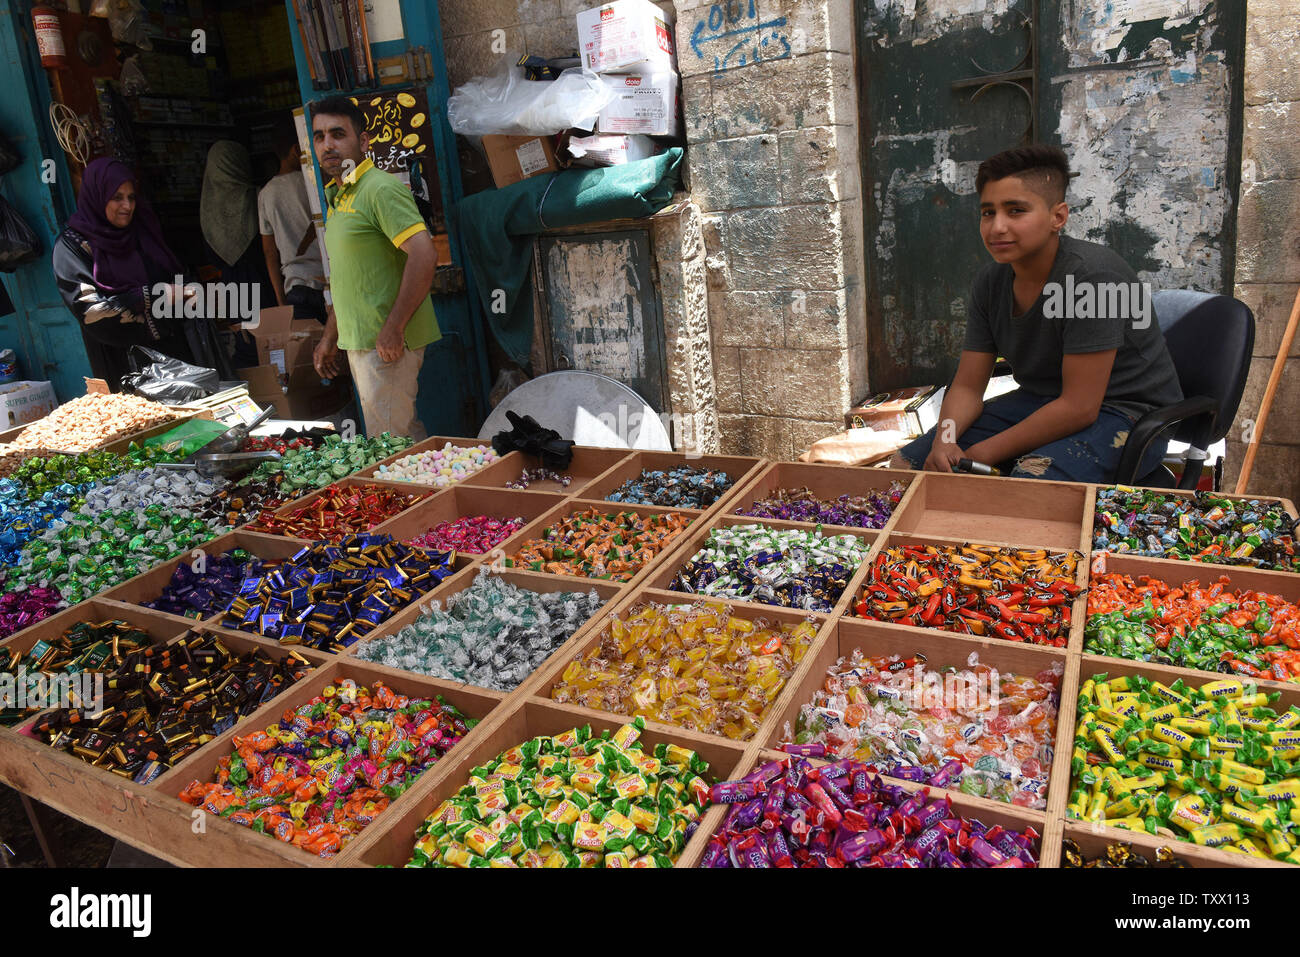 A Palestinian youth sells sweets for the Islamic holiday of Eid al-Fitr, in the market in Bethlehem, West Bank, June 13, 2018. Muslims around the world will celebrate the three day holiday of  Eid al-Fitr ,which marks the end of the Muslim holy month of fasting Ramadan.  Photo by Debbie Hill/UPI - Stock Image